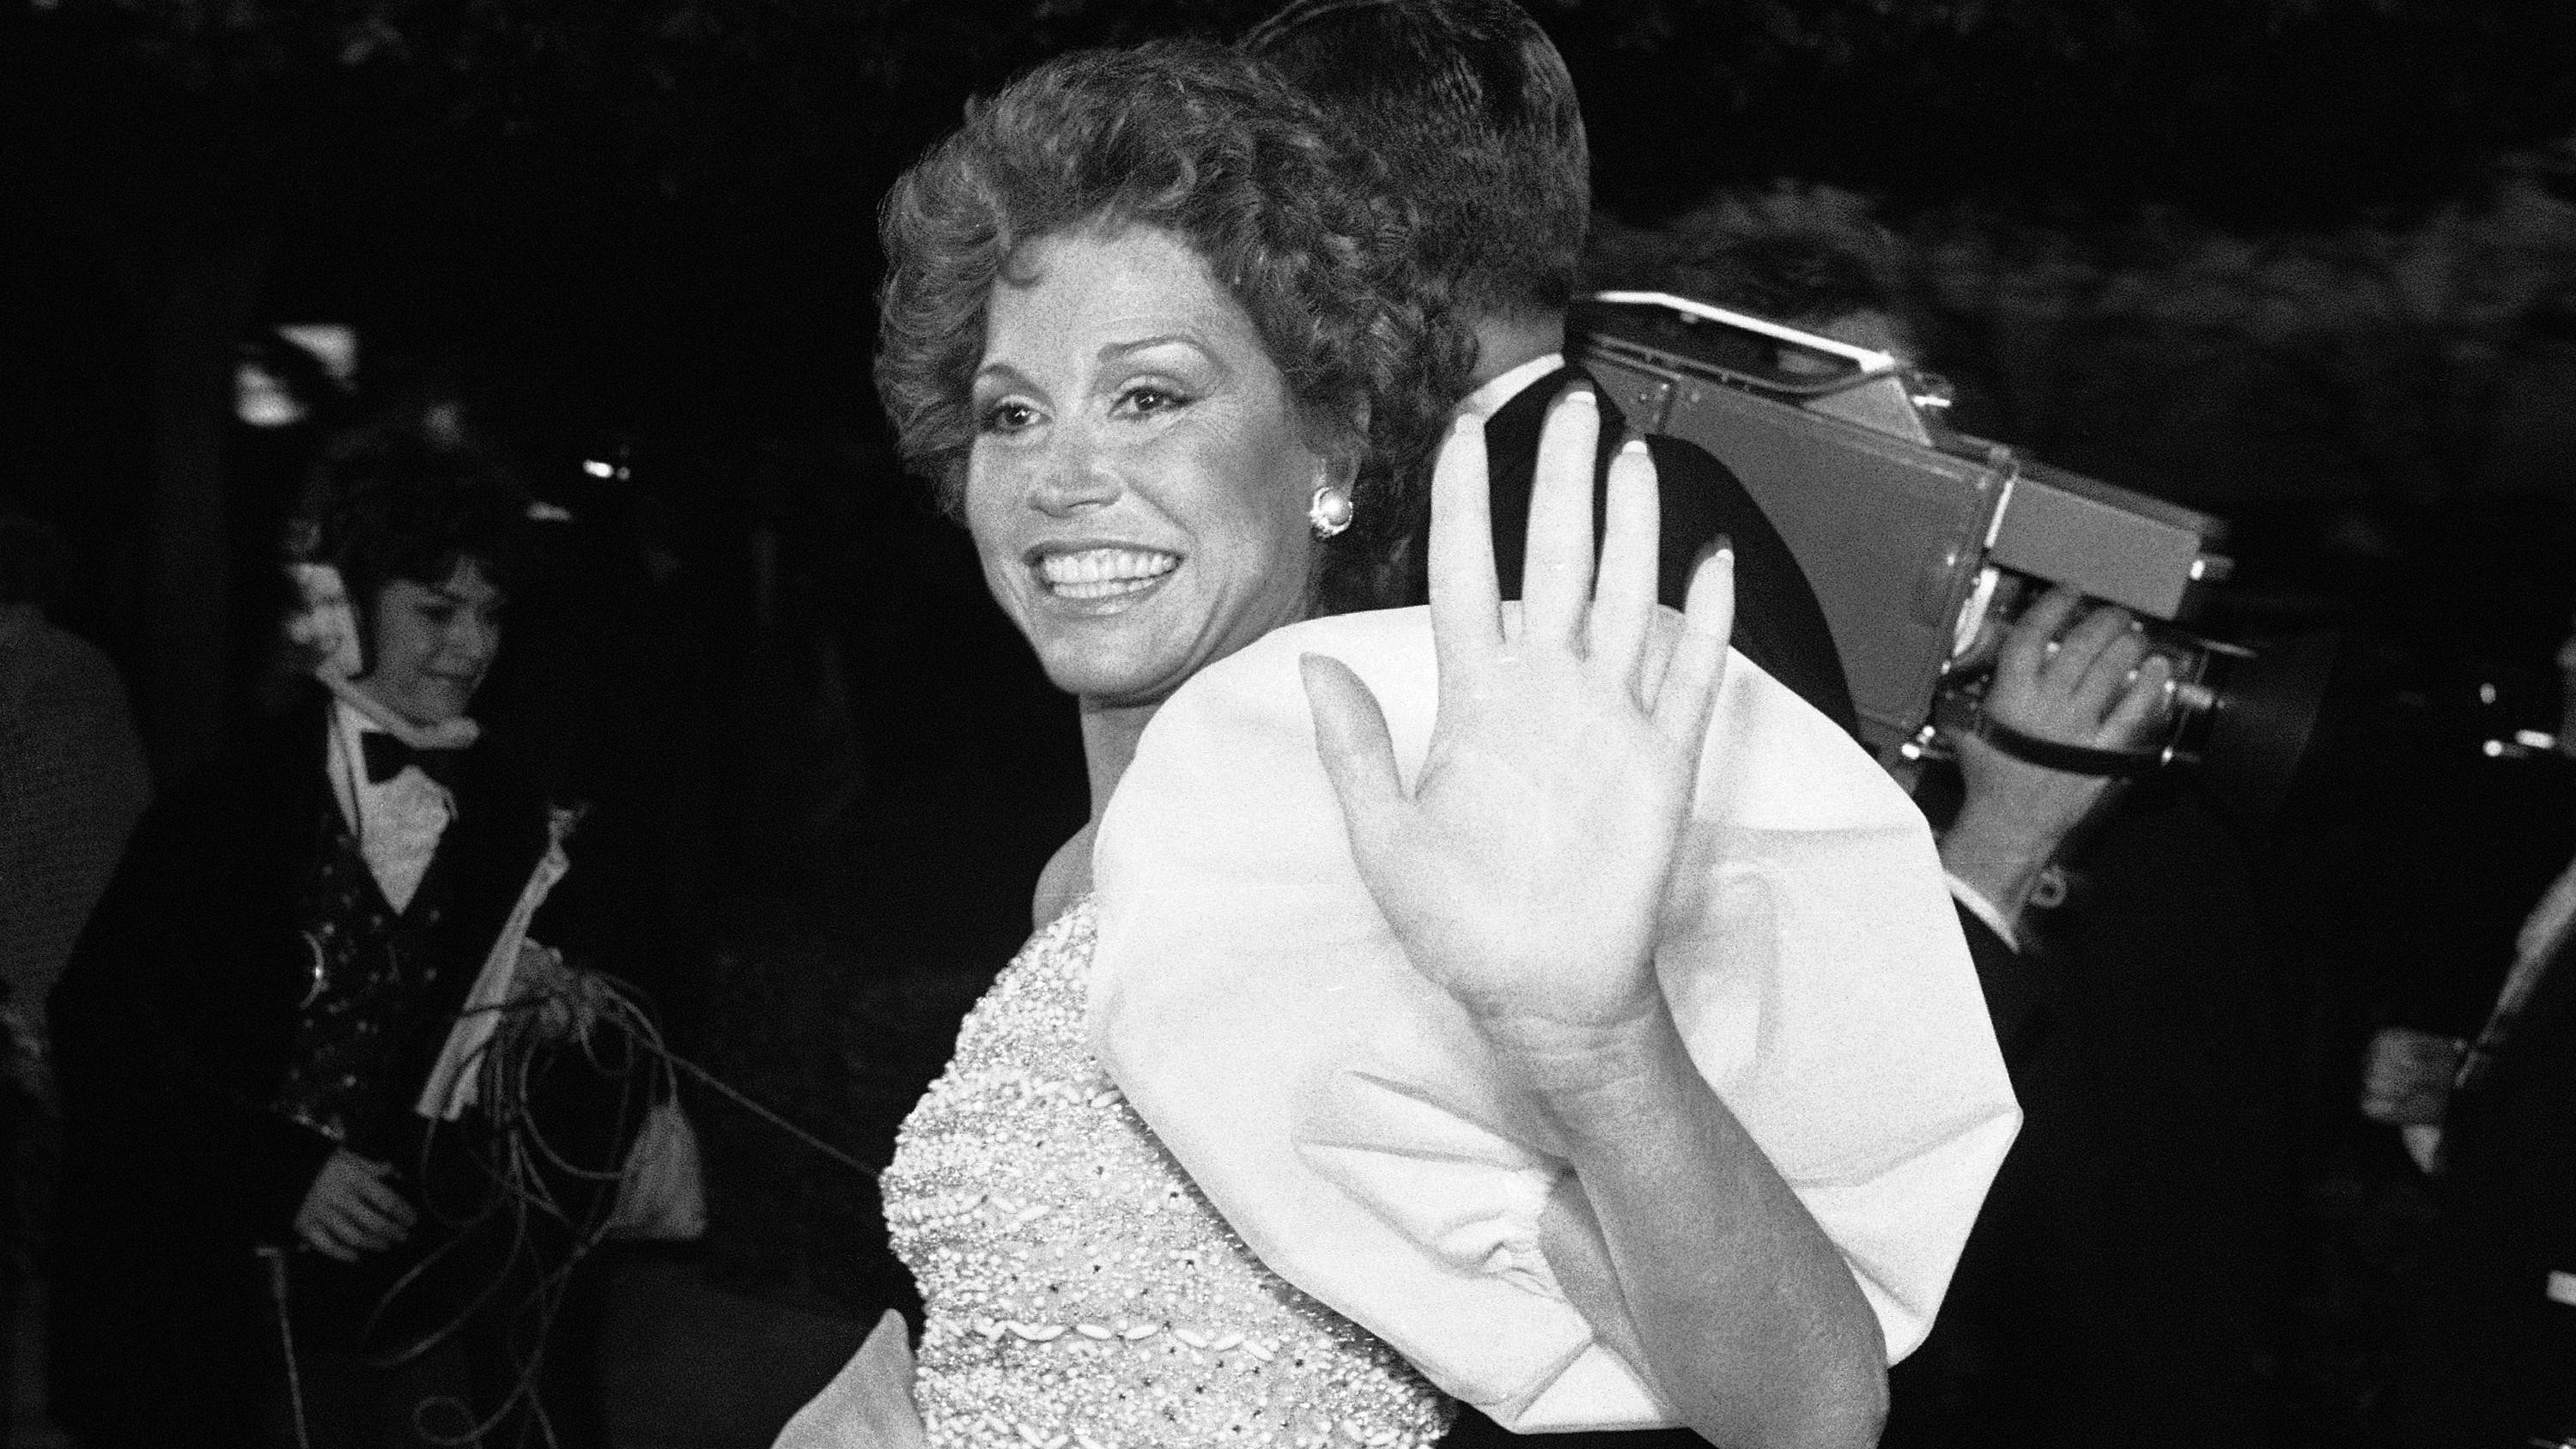 Actress Mary Tyler Moore walks past crowd outside the Los Angeles Music Center before the start of 53rd Academy Awards presentation, March 31, 1981. Ms. Moore is nominated for best actress for her work in ìOrdinary People.î (AP Photo)